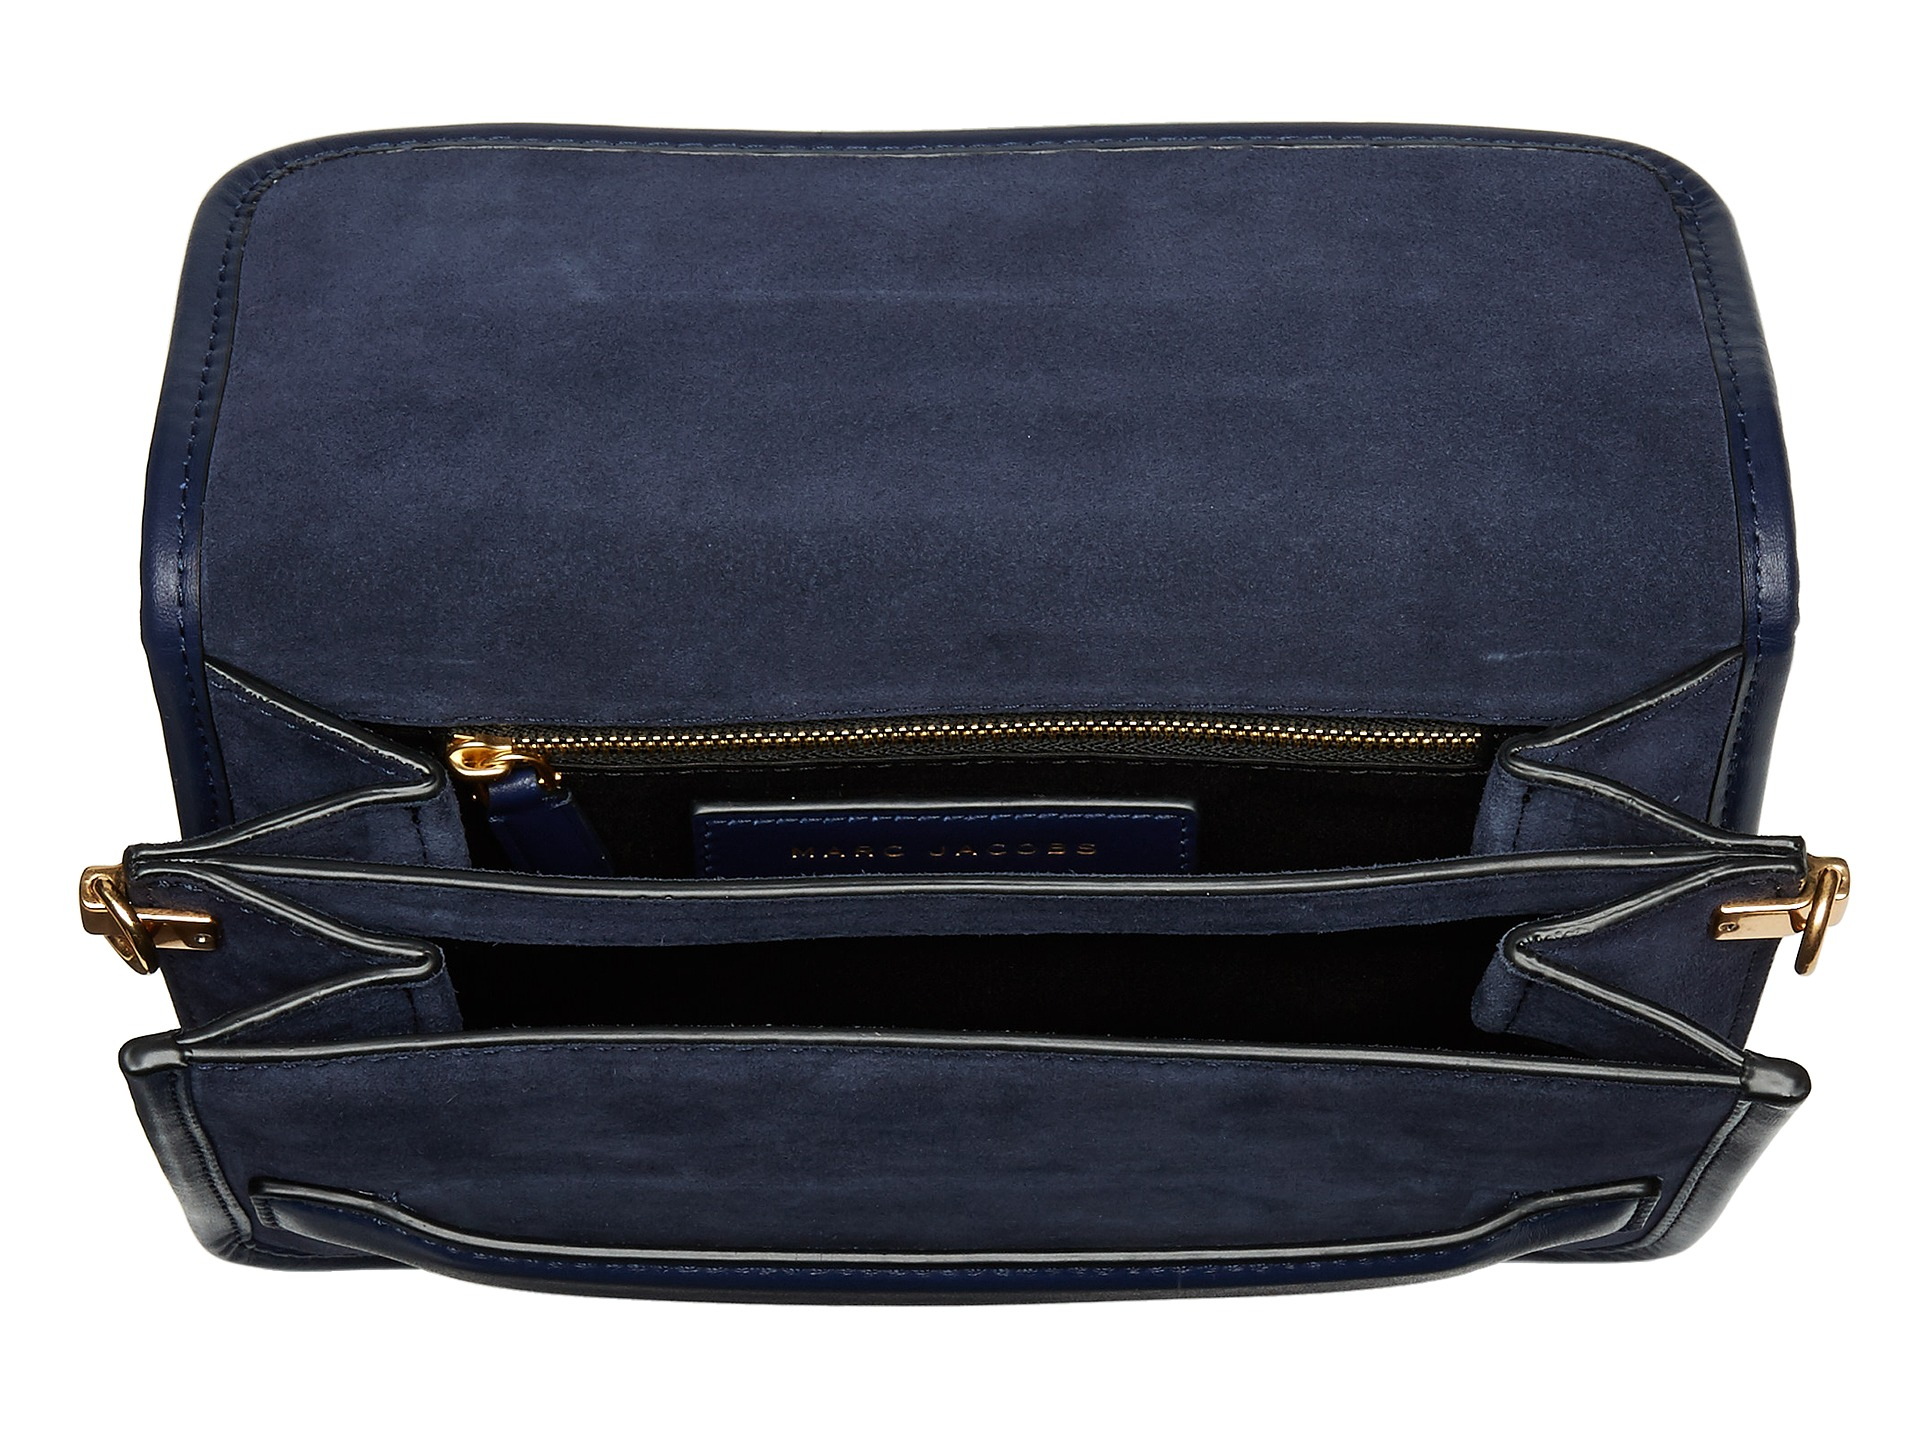 Marc jacobs Madison Suede Medium Shoulder Bag in Blue | Lyst